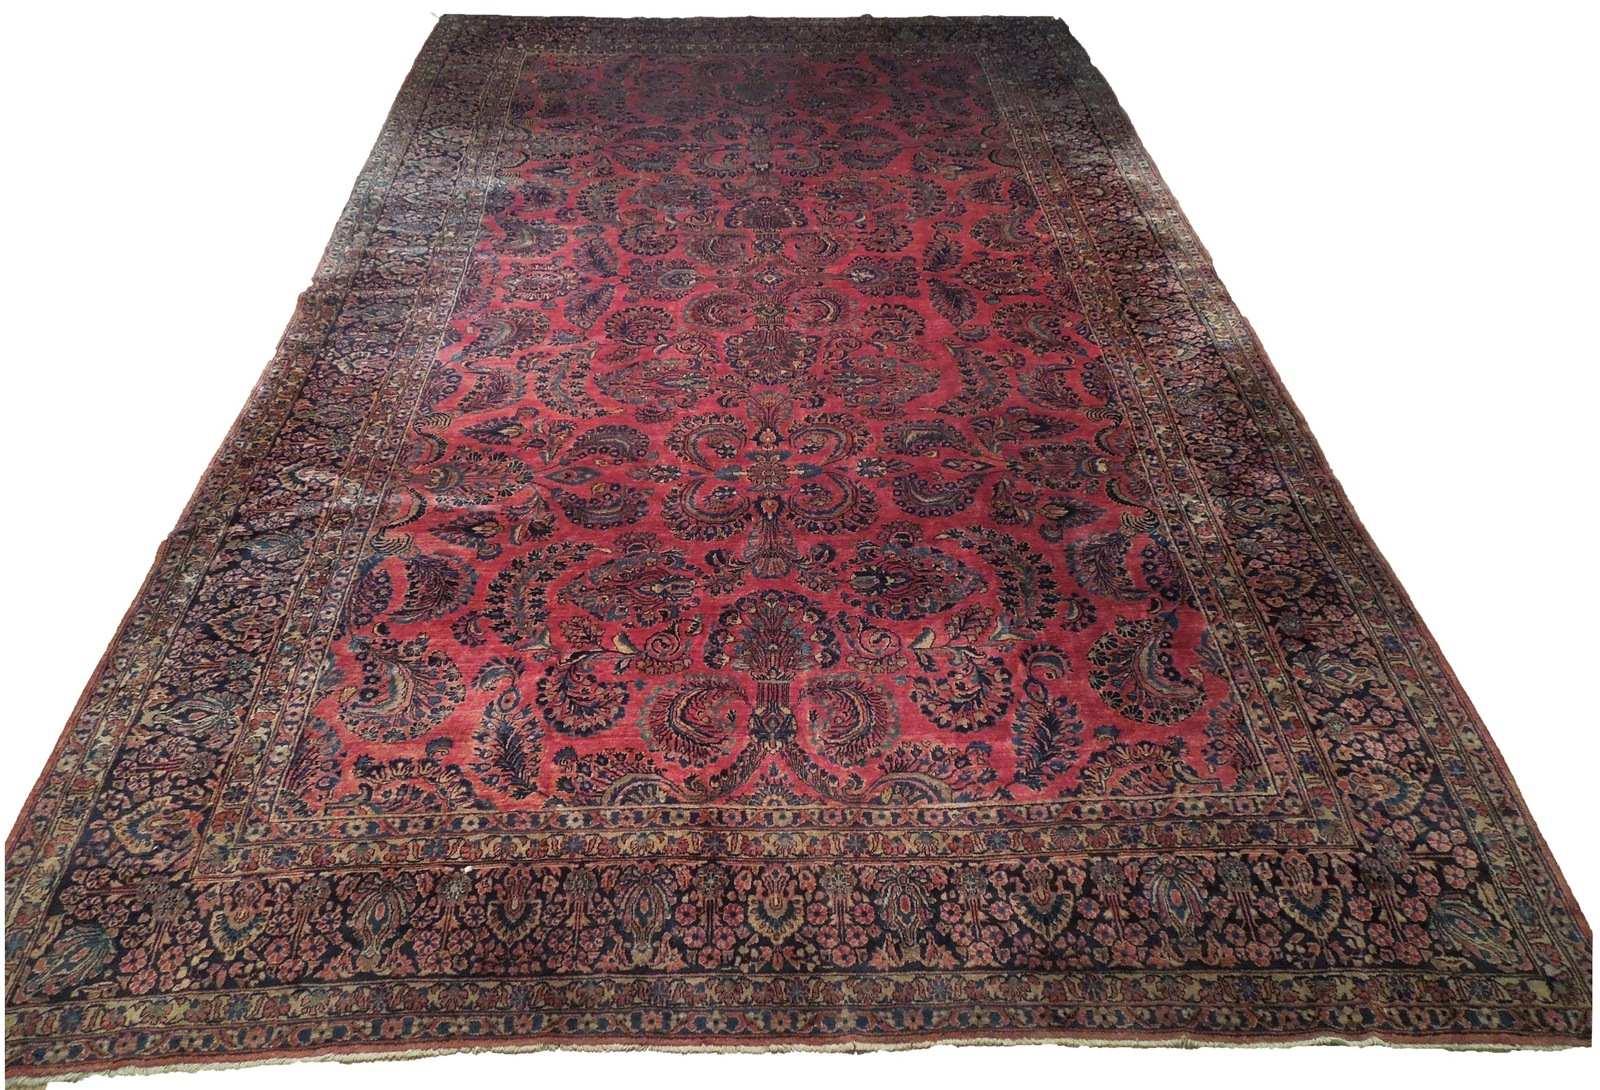 Red Sarouk Persian Wool Handmade Rug 11' x 18' Vivid Red Detailed Original Rug